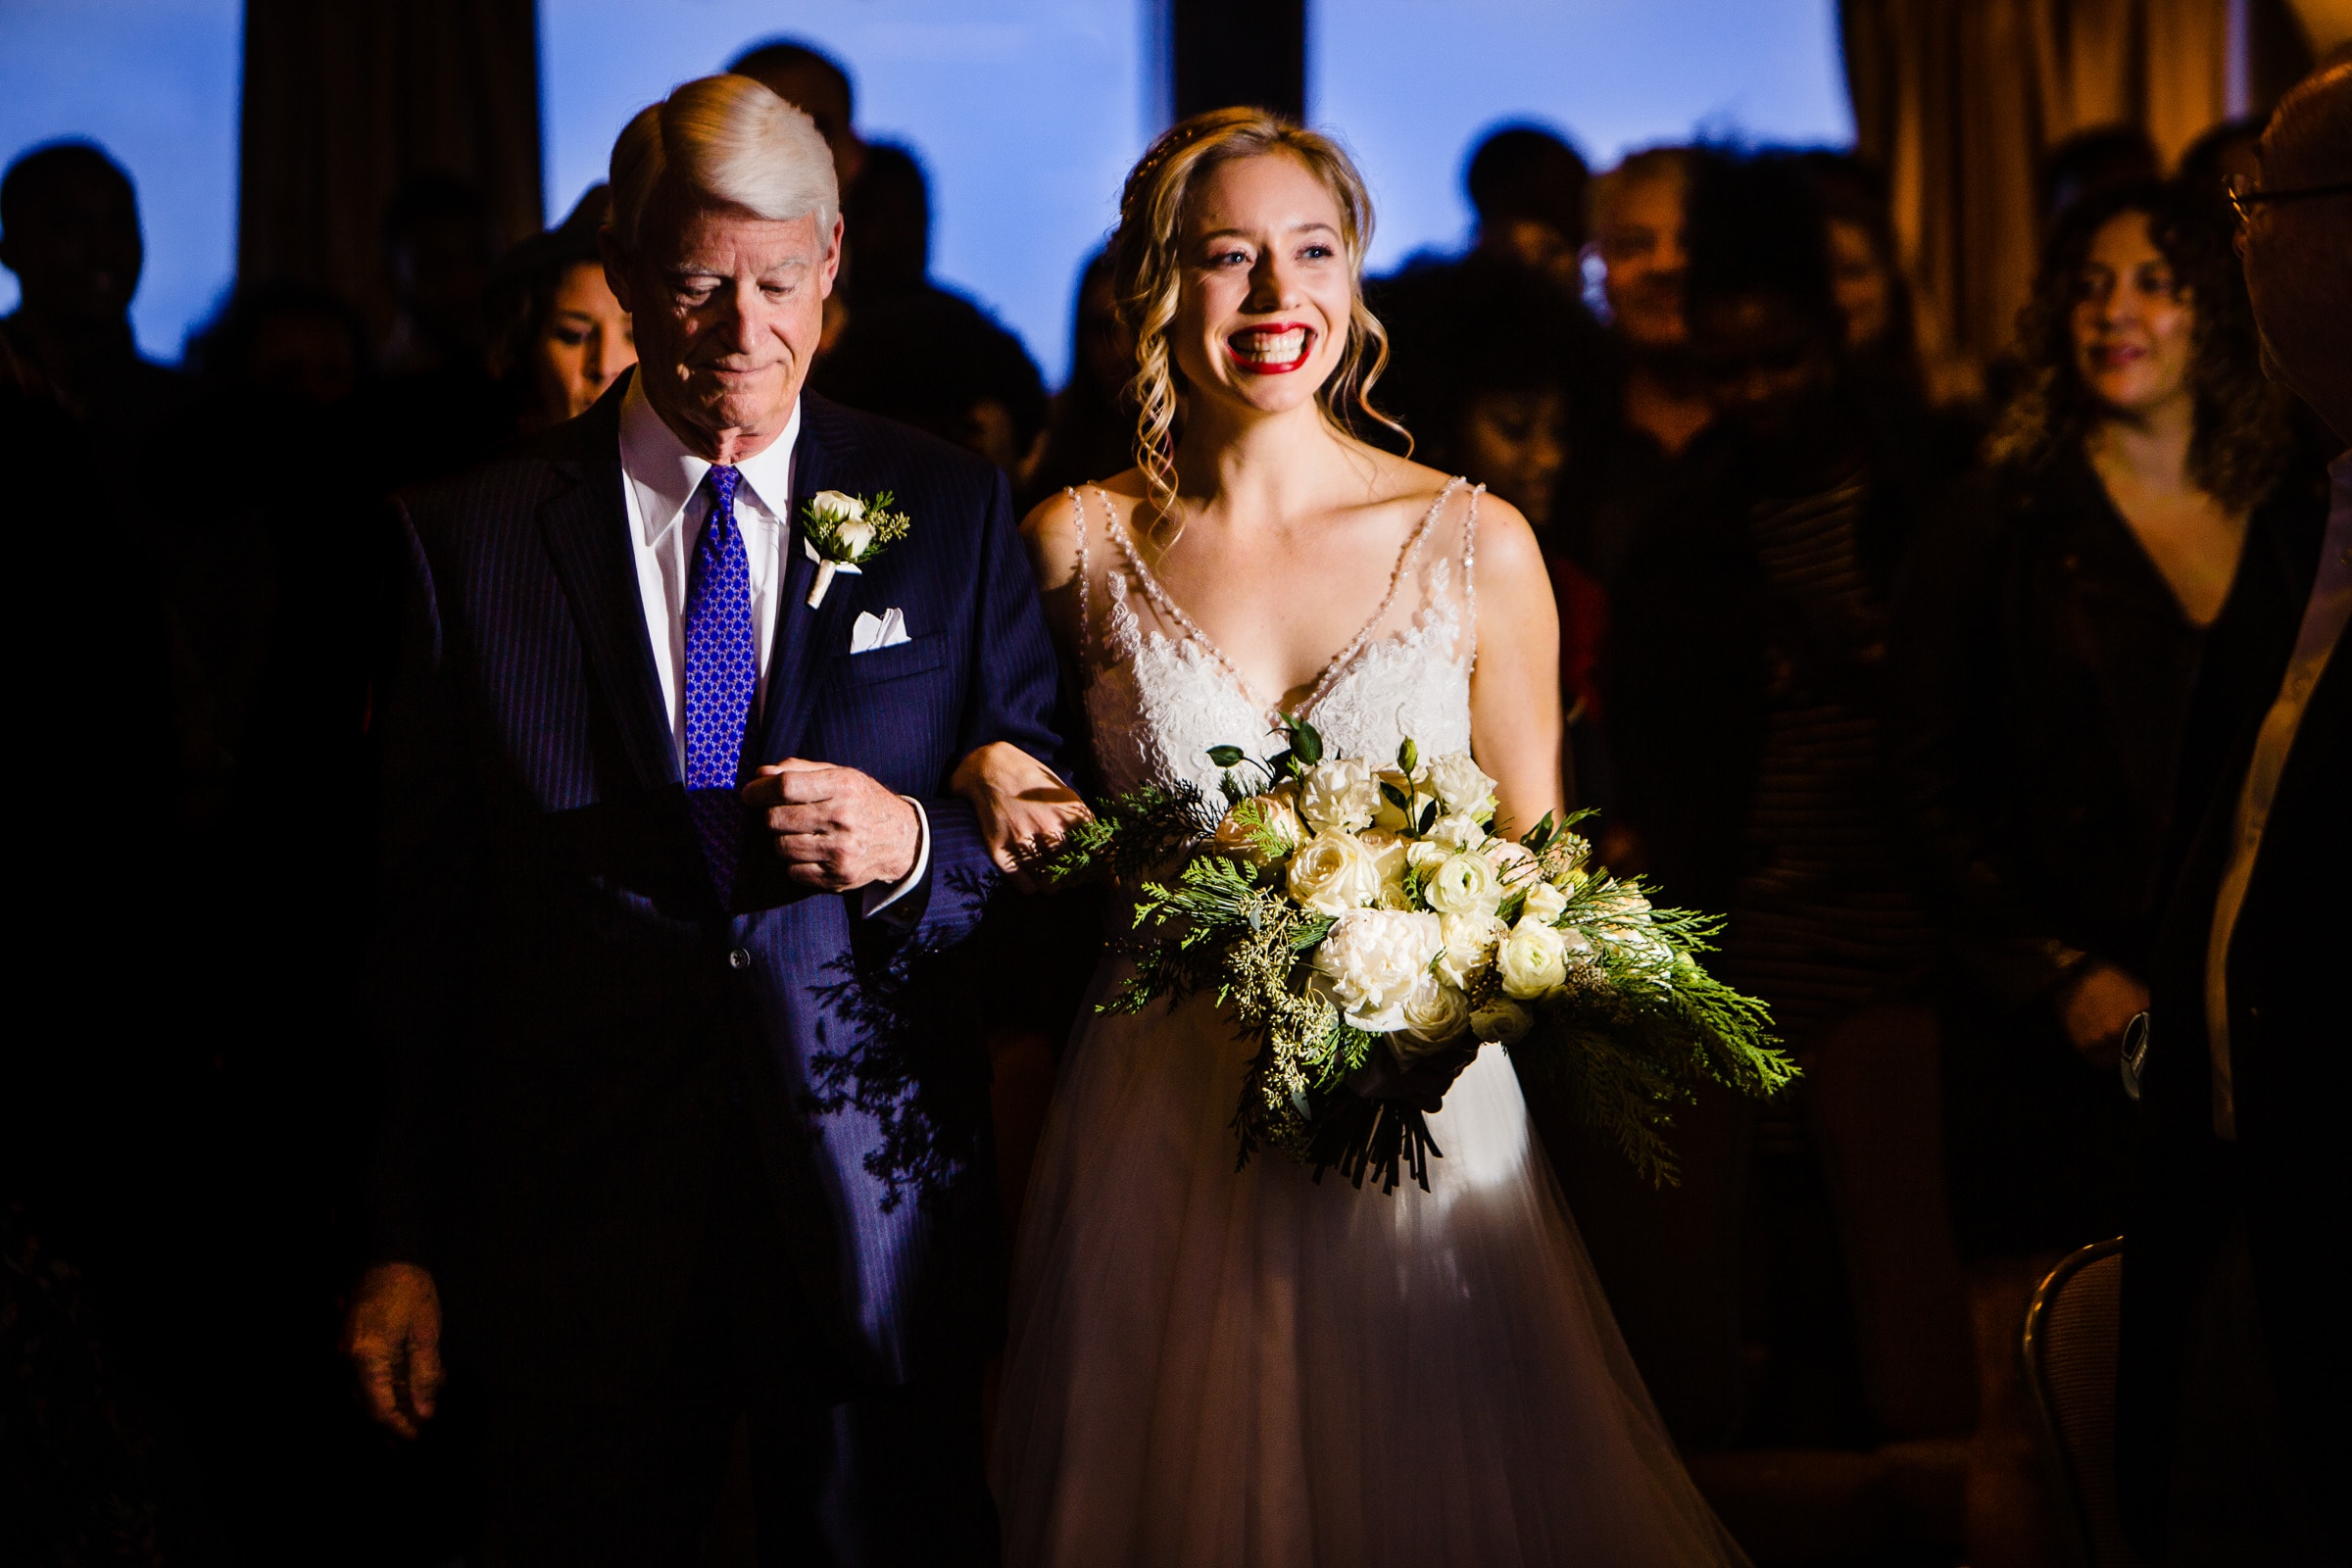 Gorgeous happy bride walking in with her father during a Timberline Lodge Wedding ceremony